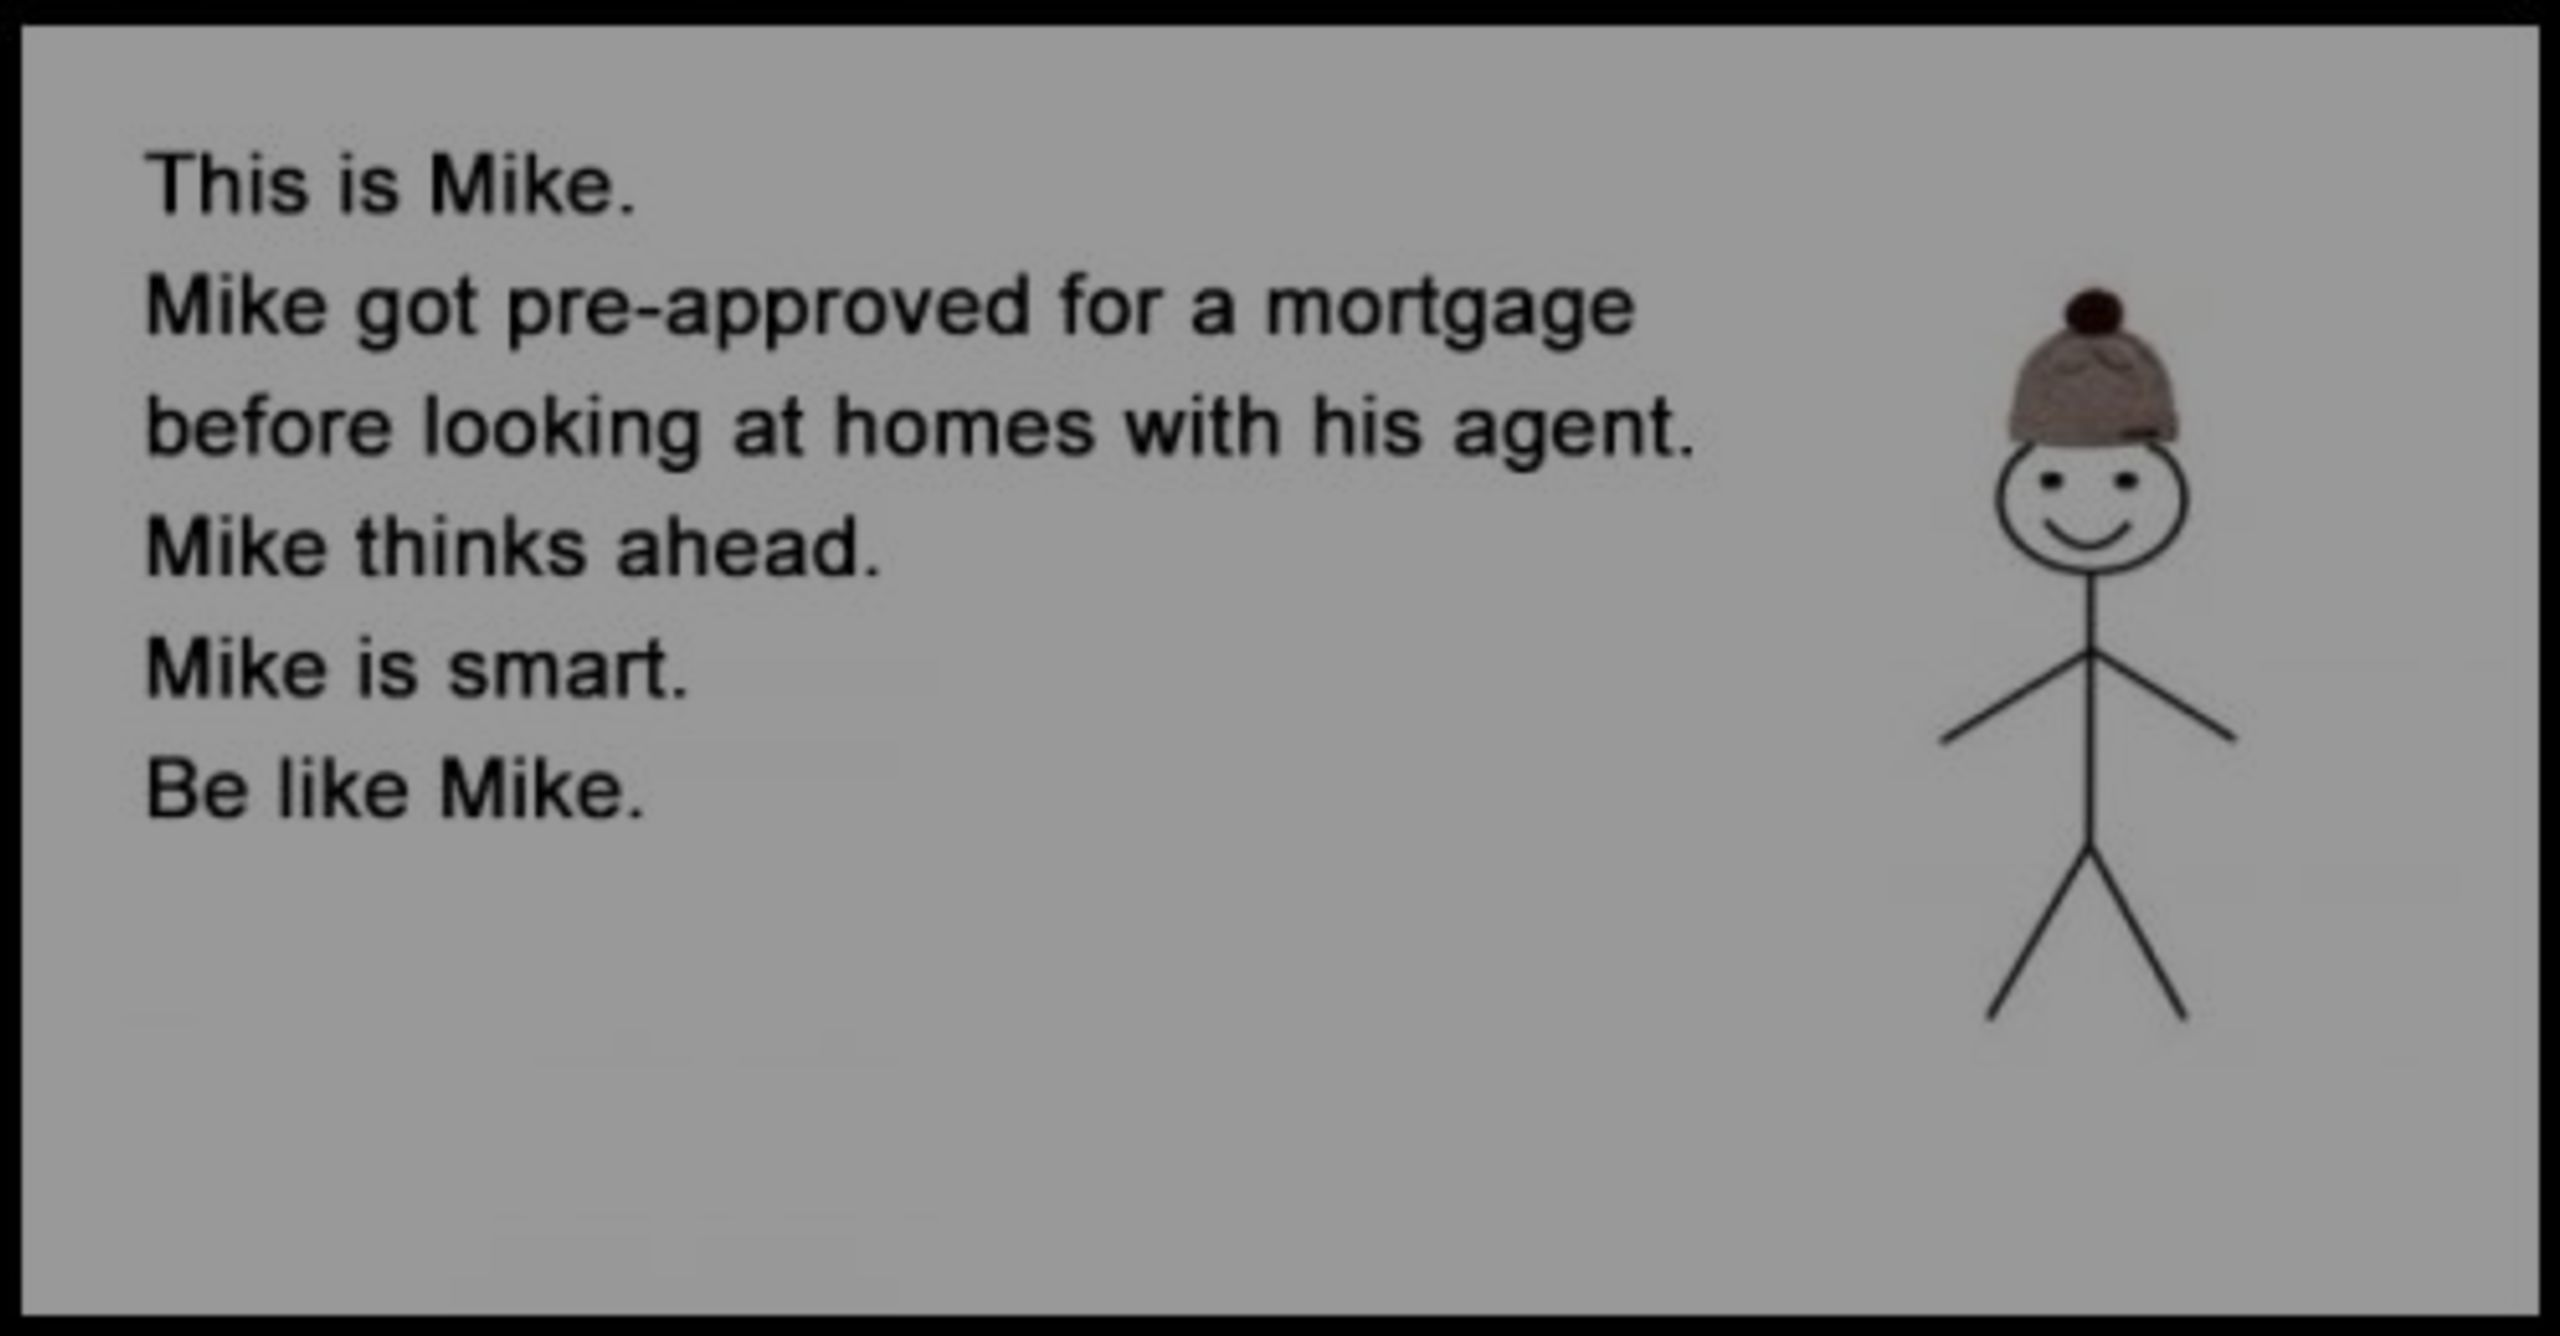 6 Reasons Your Agent Wants You Pre-Approved Before Showing You Homes